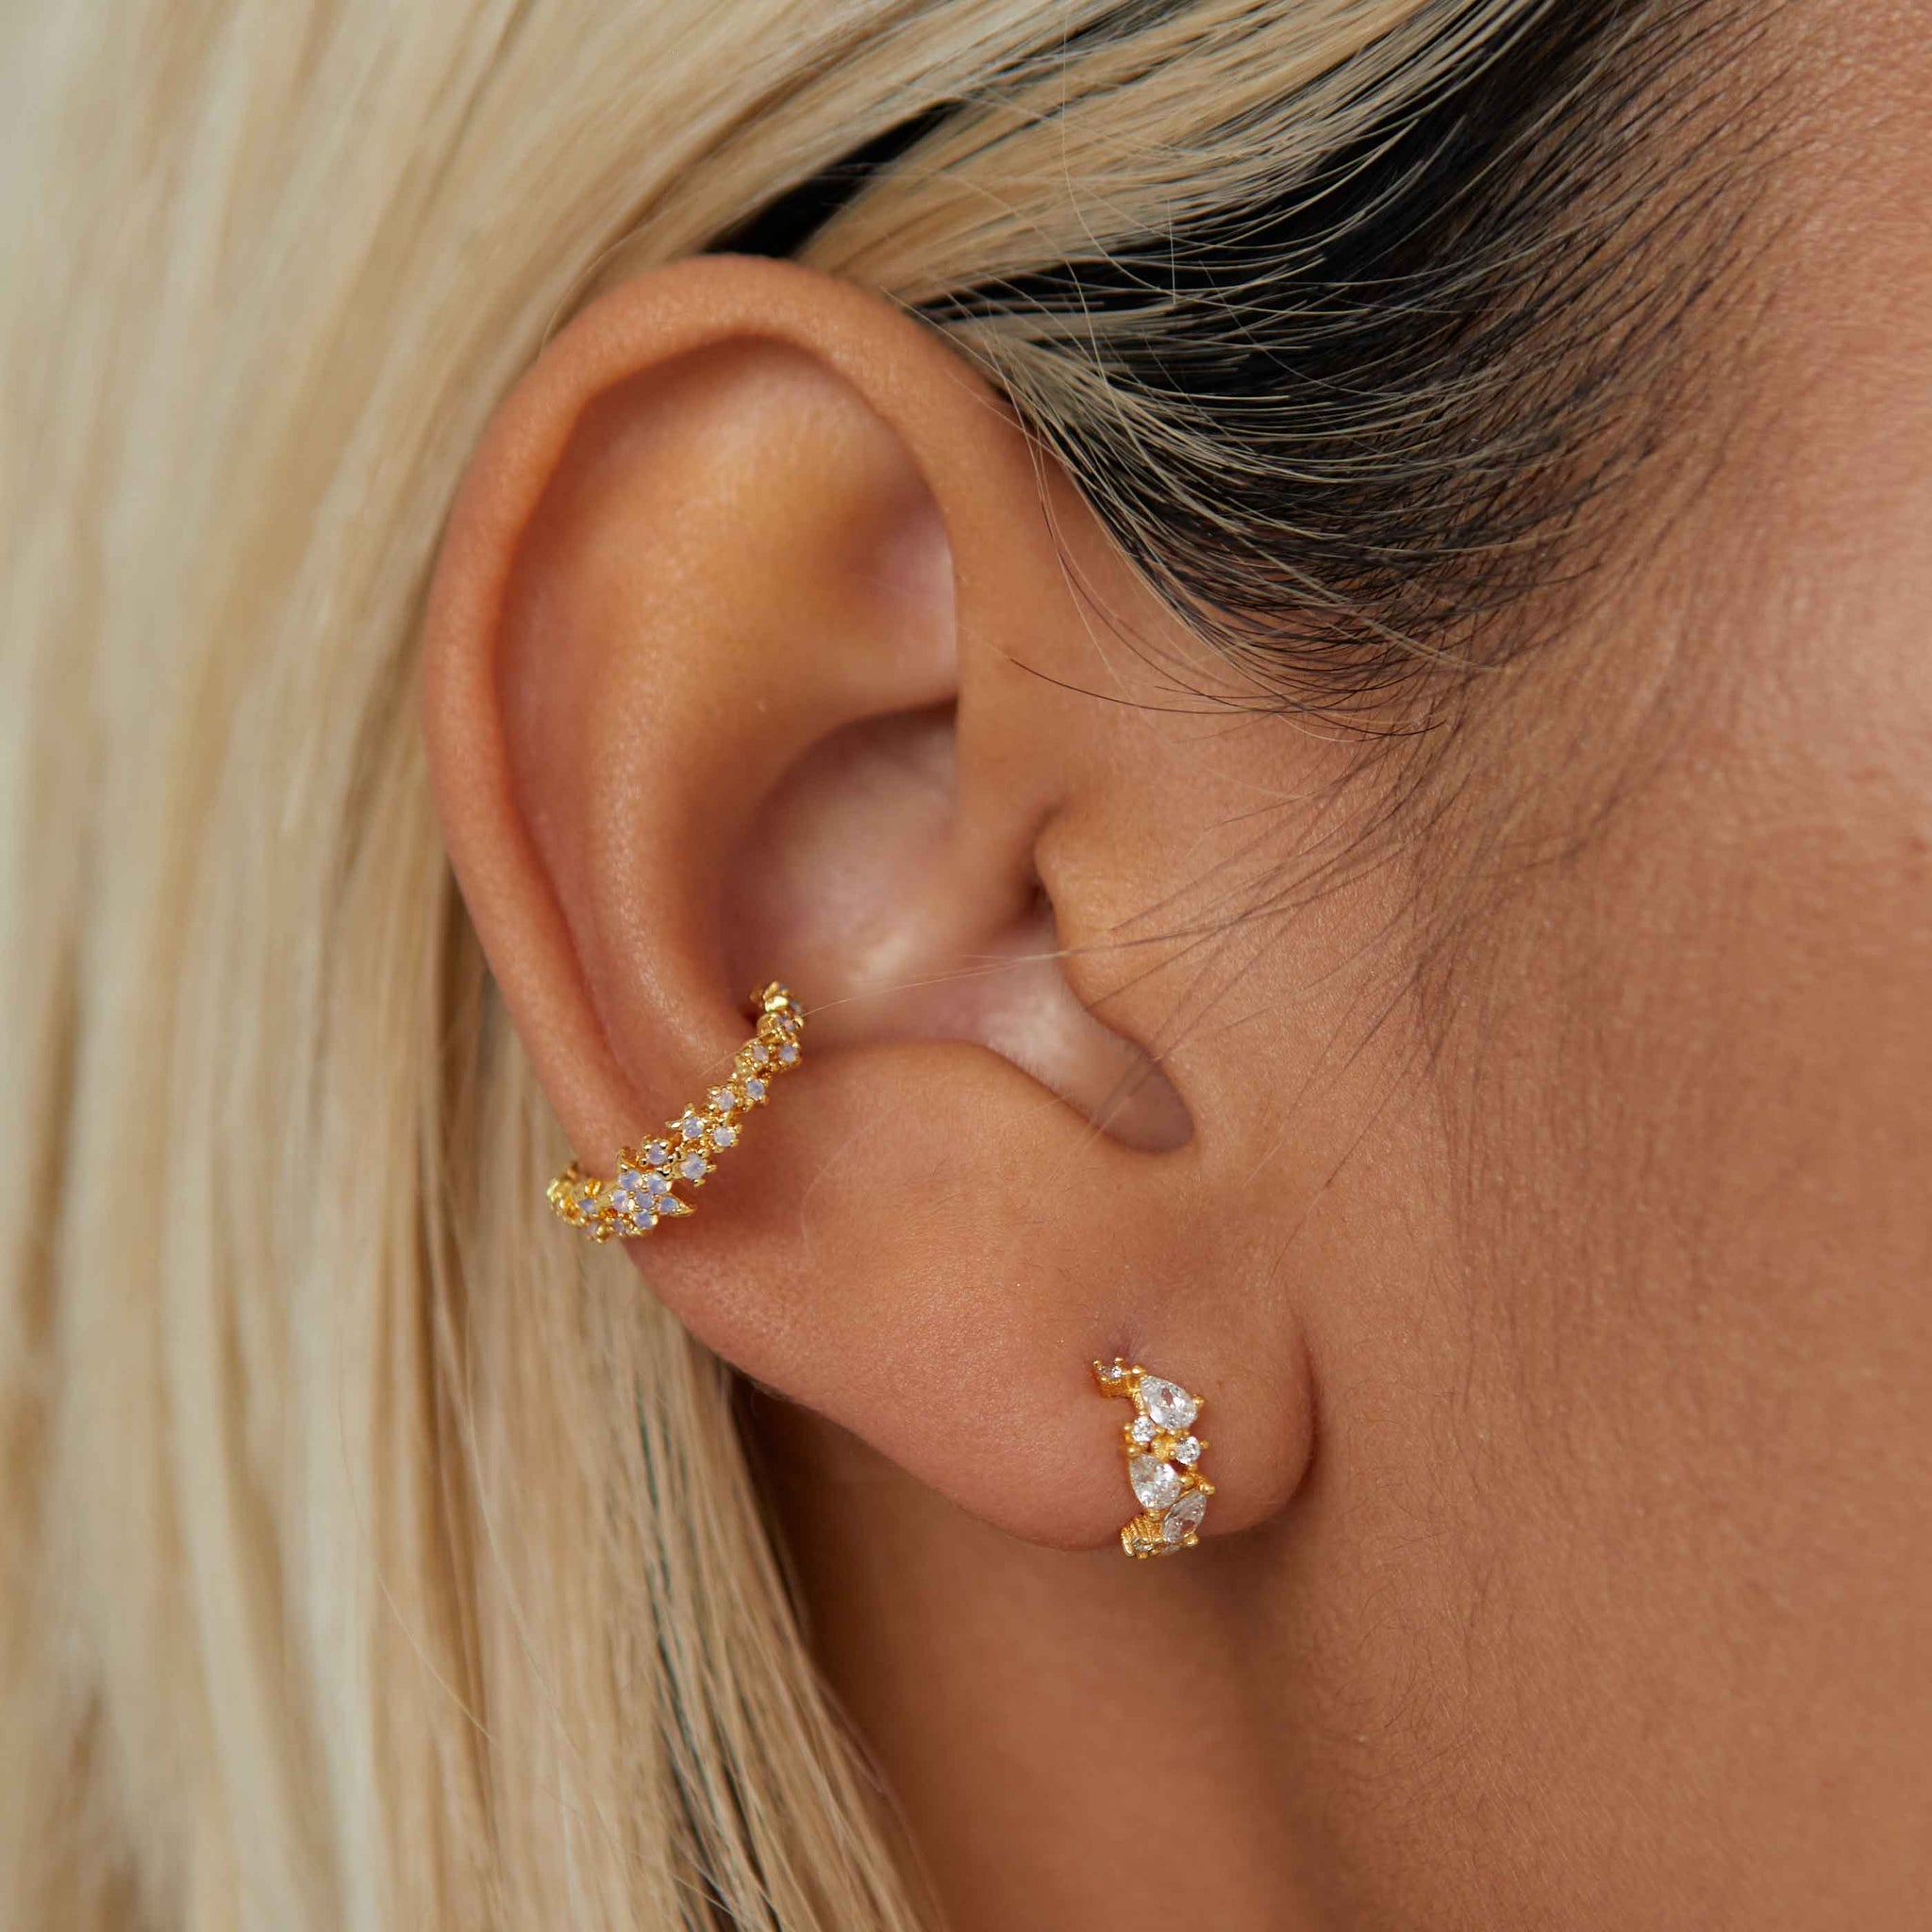 Mystic Crystal Huggies in Gold worn with mystic ear cuff